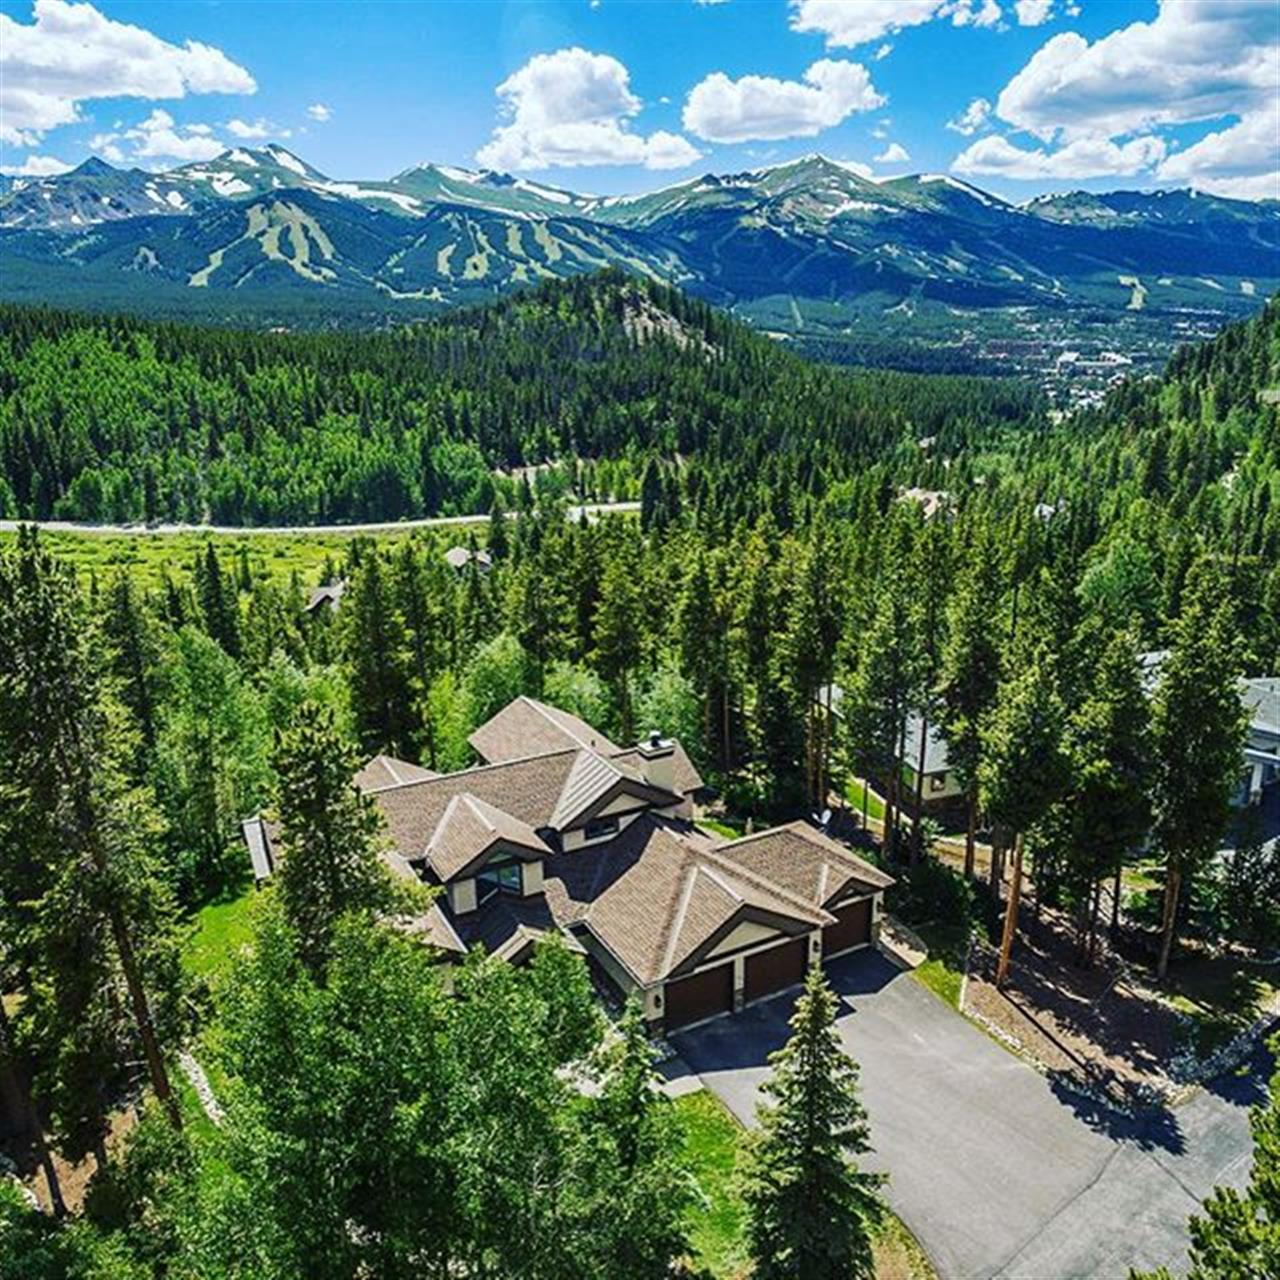 Check out this insane view! #newlisting #milliondollarviews #breck #luxuryliving